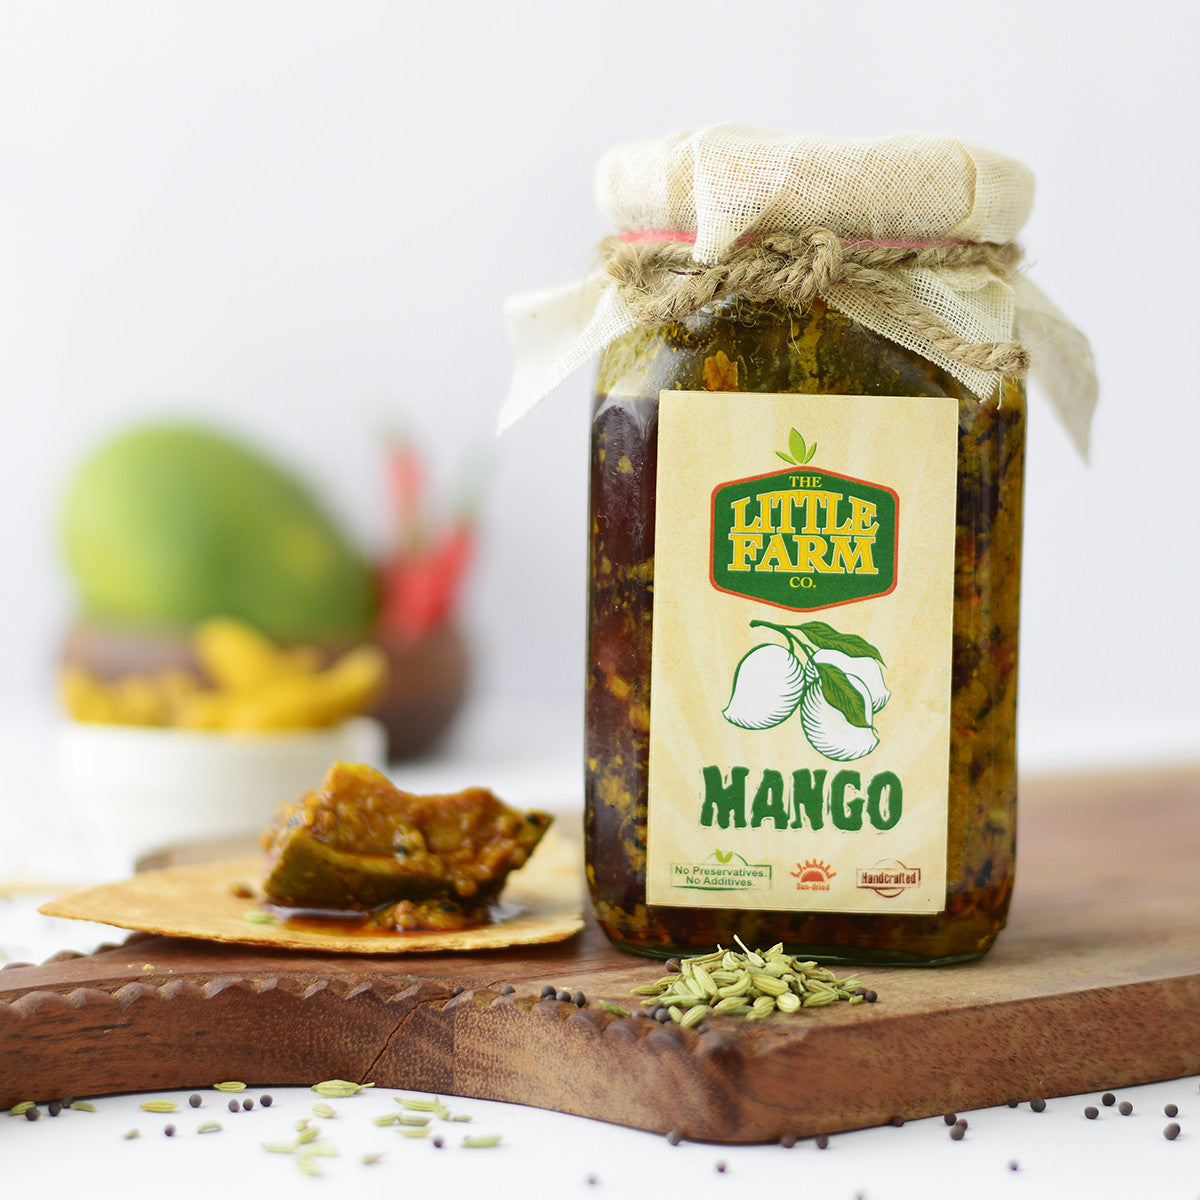 Mango Pickle-Homemade